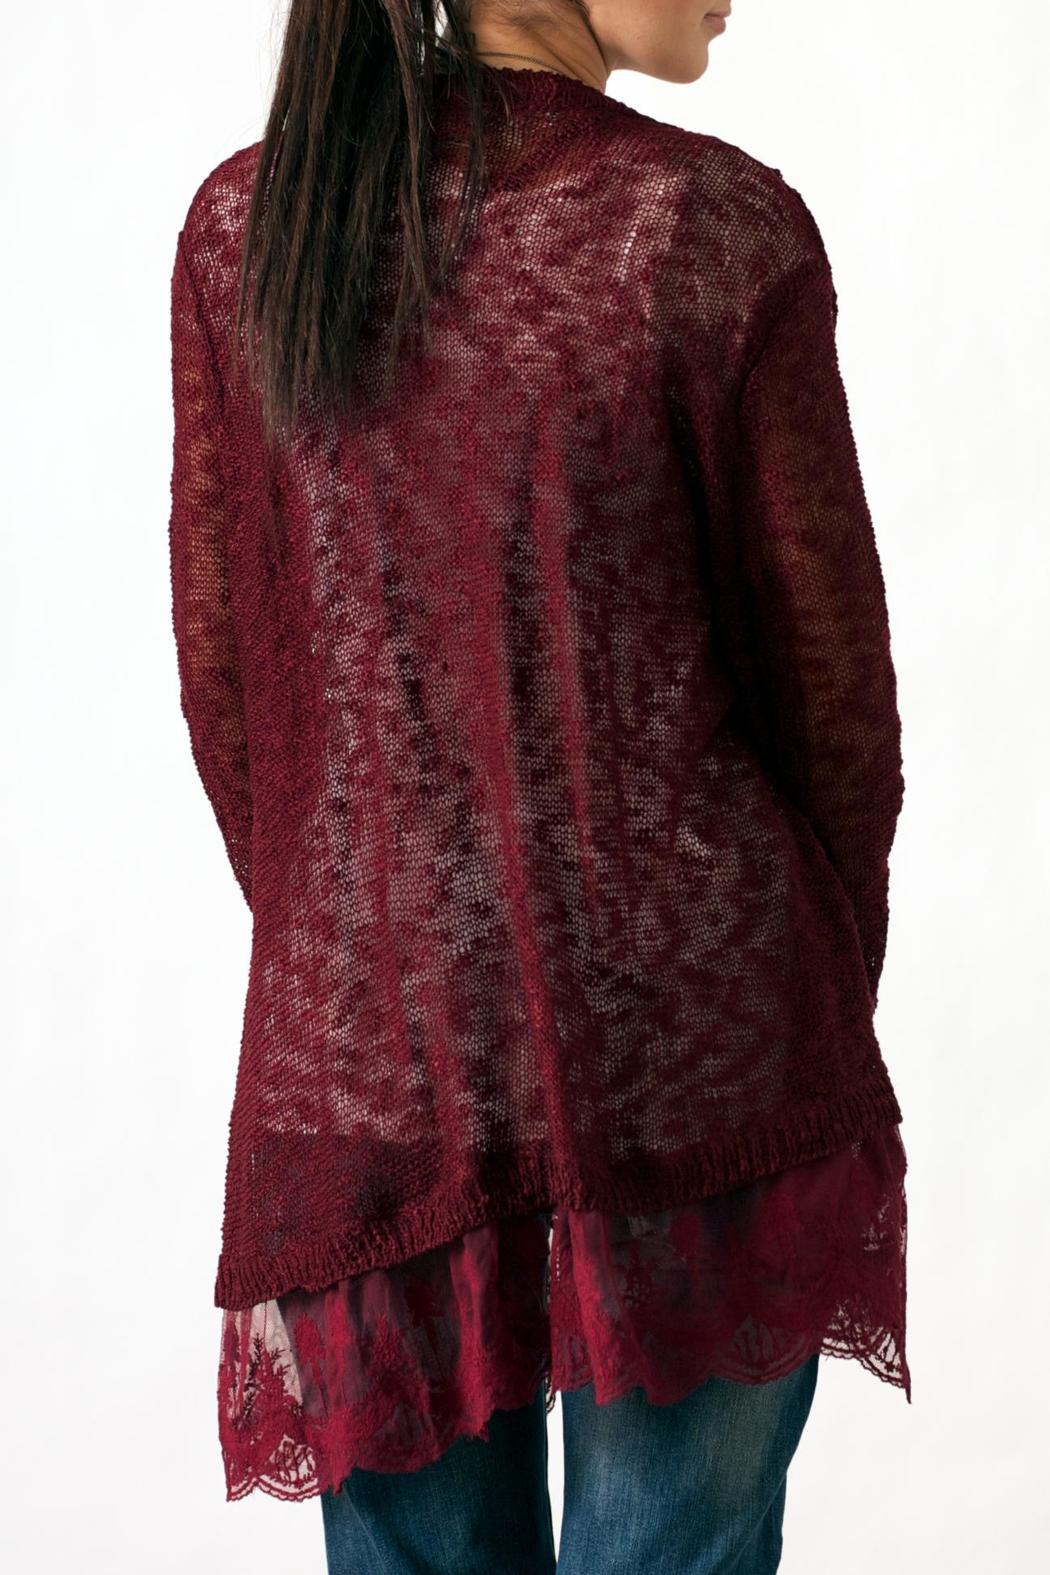 Umgee USA Lace Bottom Cardigan from Philadelphia by May 23 ...